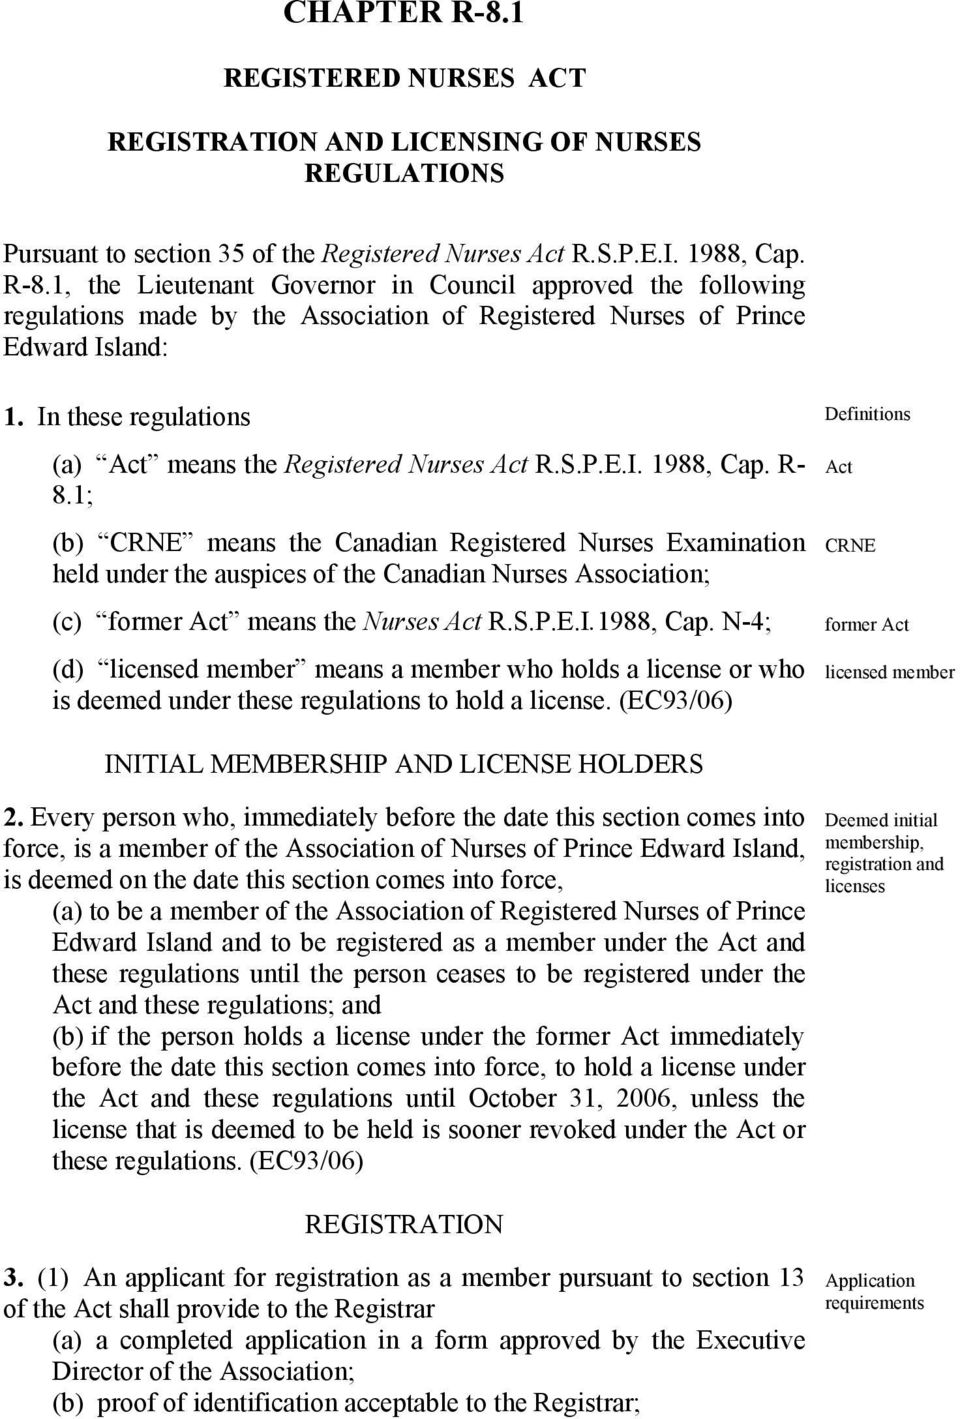 1; (b) CRNE means the Canadian Registered Nurses Examination held under the auspices of the Canadian Nurses Association; (c) former Act means the Nurses Act R.S.P.E.I.1988, Cap.